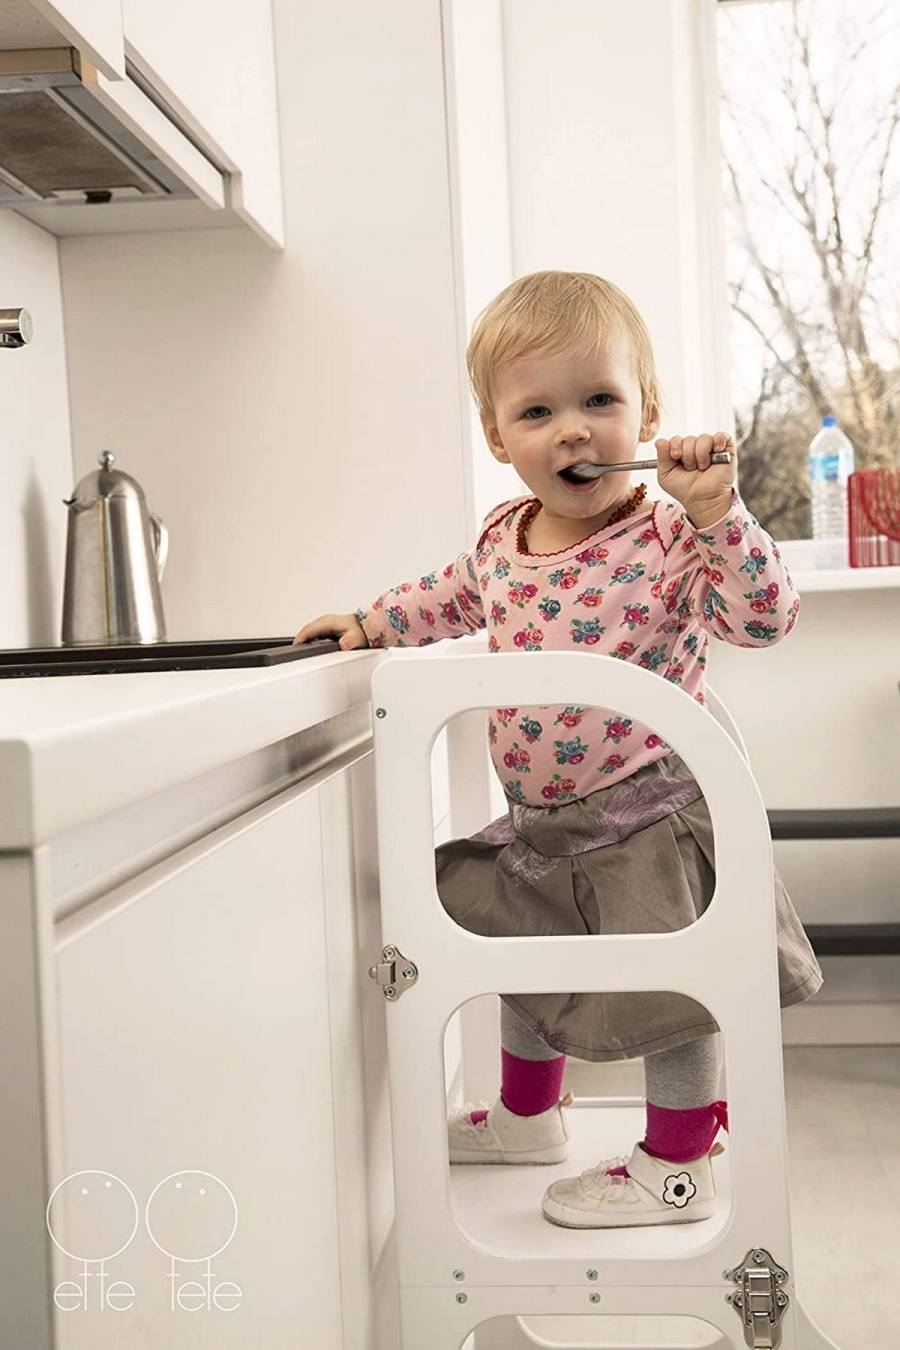 Montessori learning tower, also called a kitchen helper, might be one of the best practical items to have around the house when you're surrounded by a toddler's growing interest in, well, everything around the house.